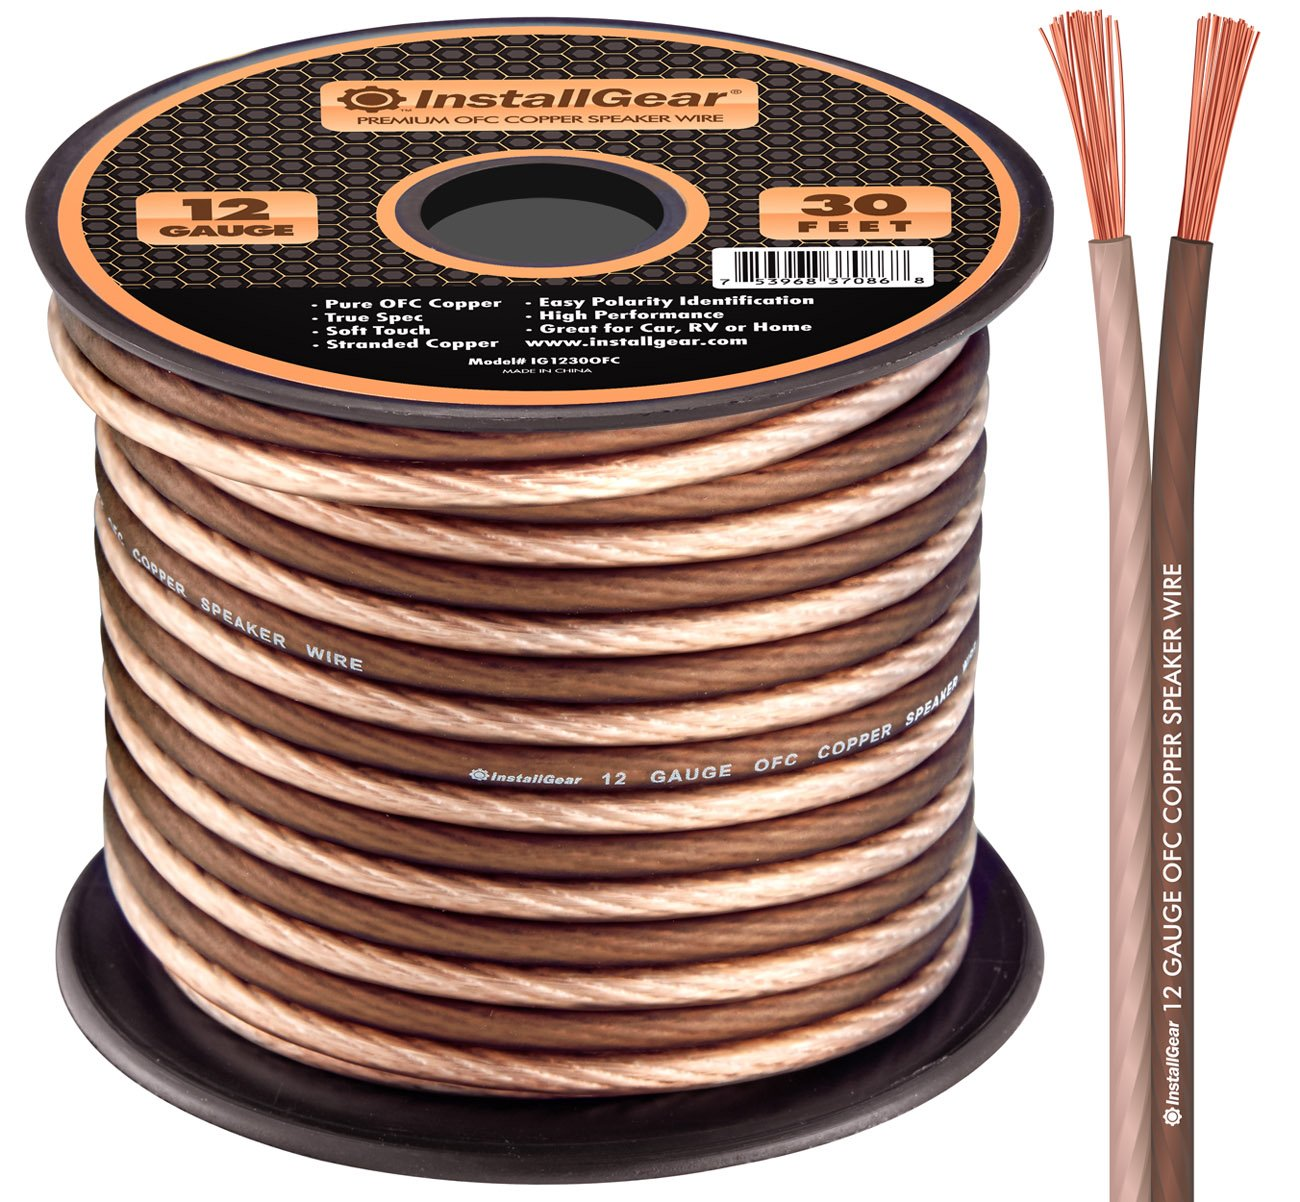 InstallGear 12 Gauge Speaker Wire - 99.9% Oxygen-Free Copper - True Spec and Soft Touch Cable (30-feet) by InstallGear